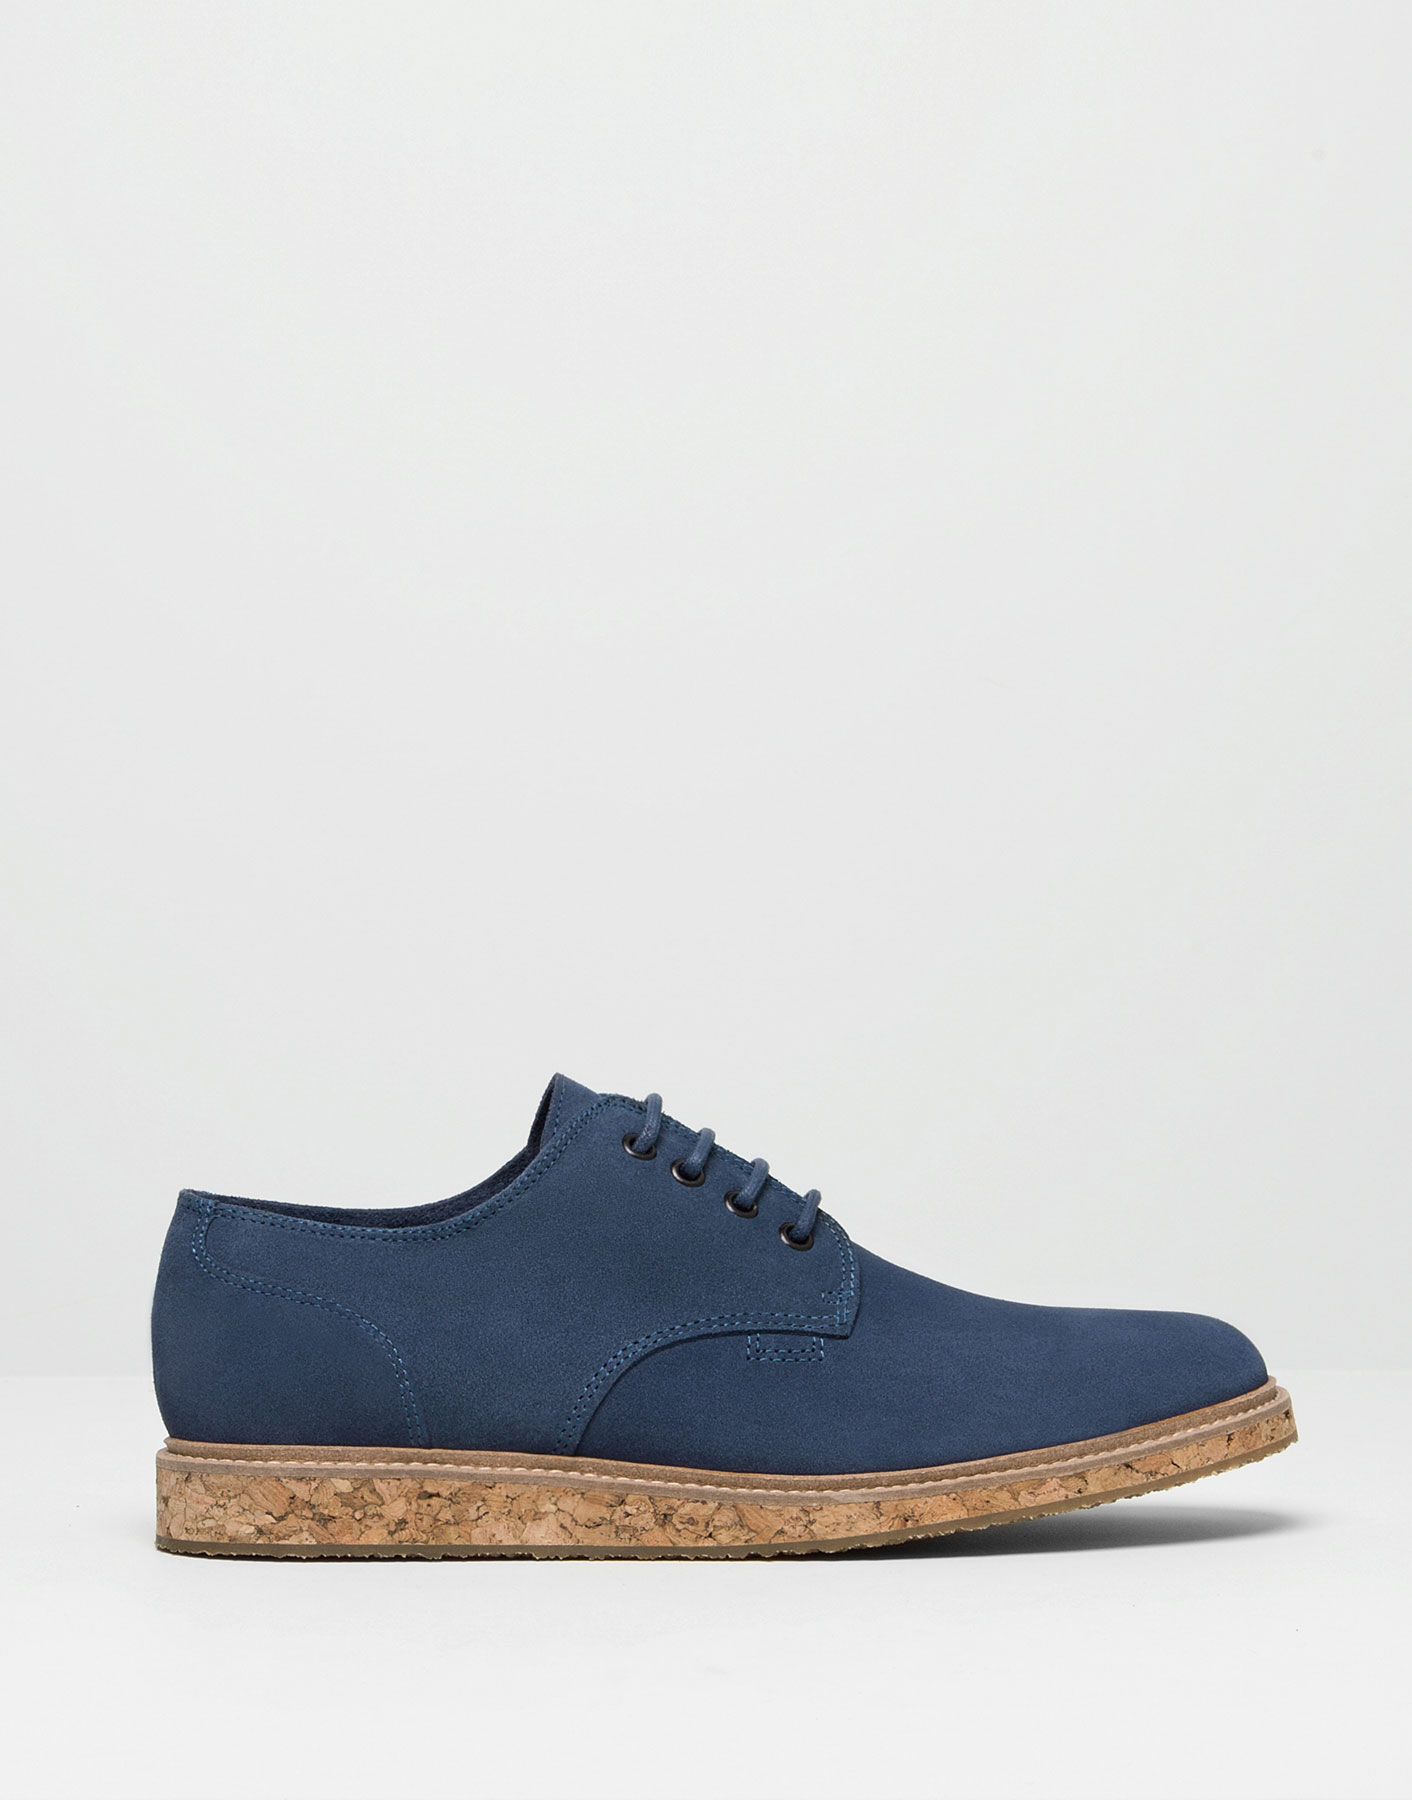 Top Pull & Bear Shoes Price List 2018